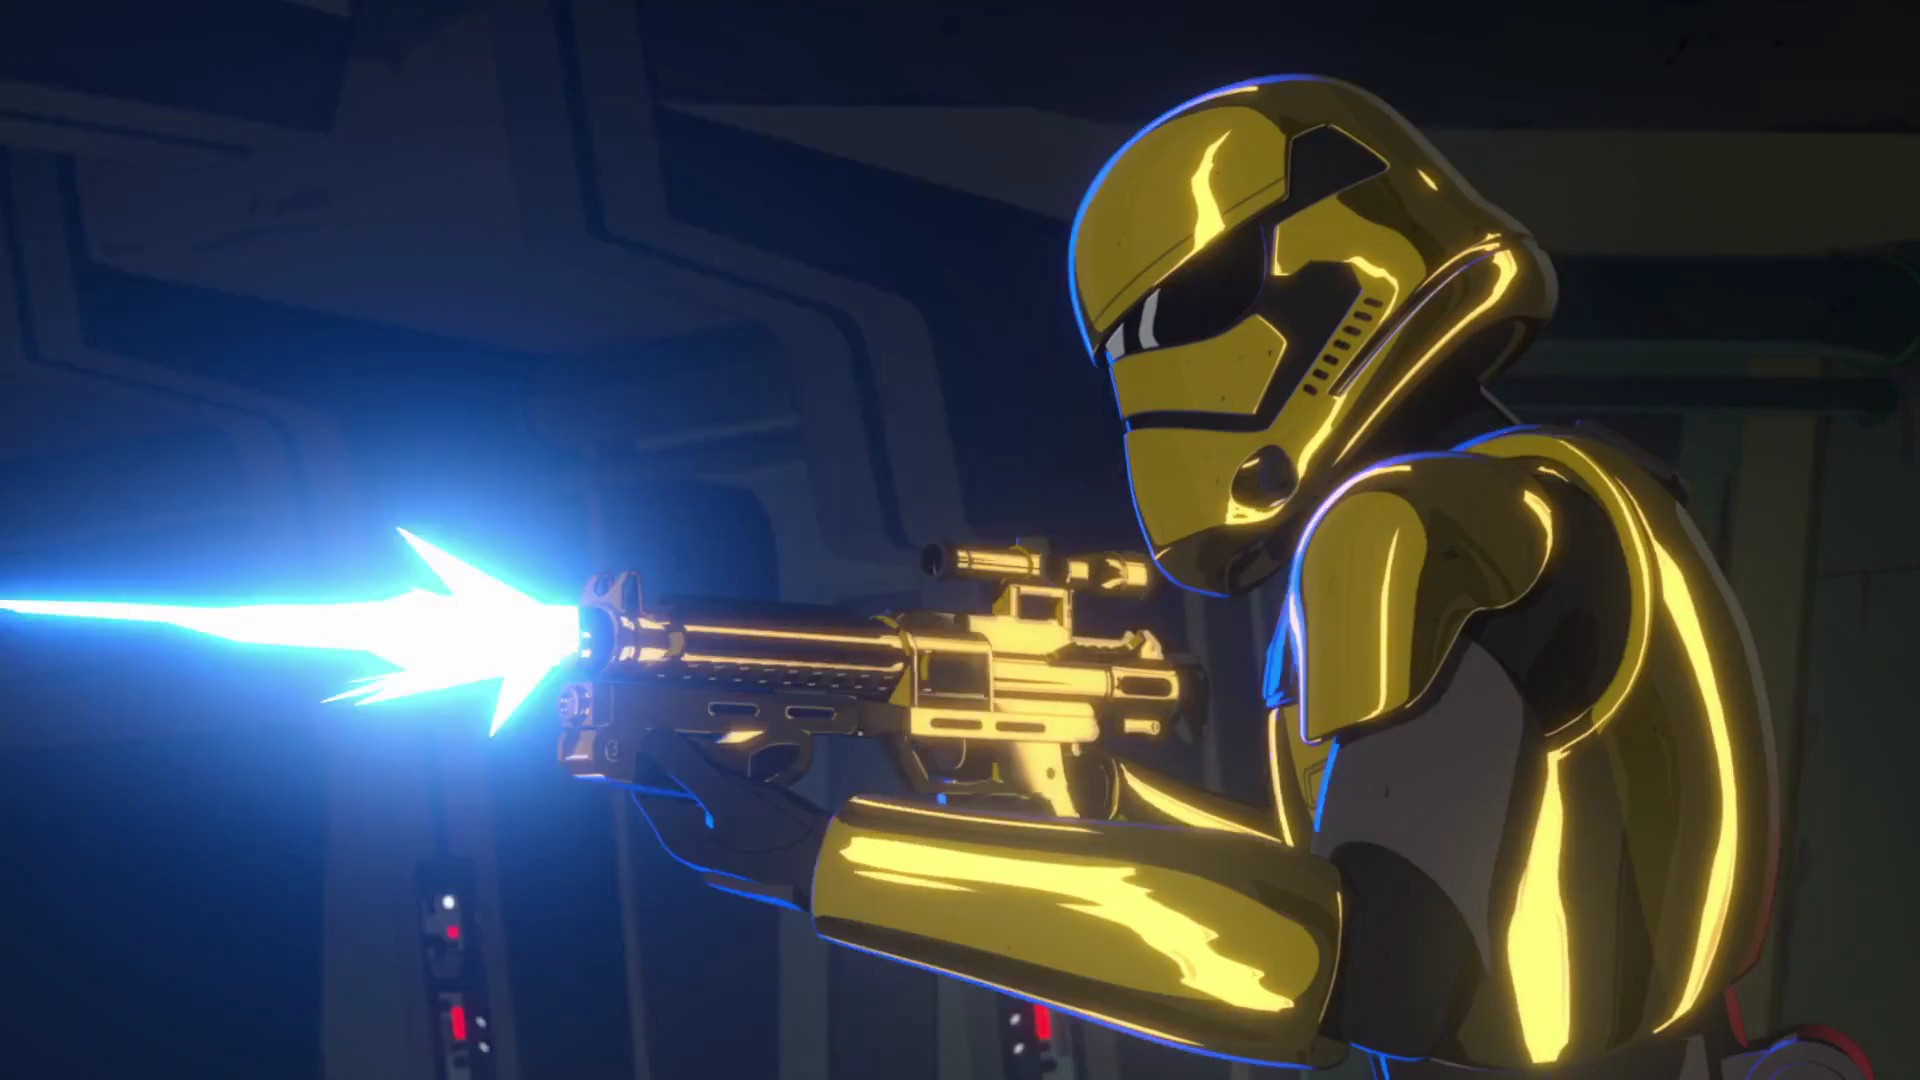 Star Wars Resistance Is A Interesting Story But A Weak Comedy By Joshua M Patton Medium